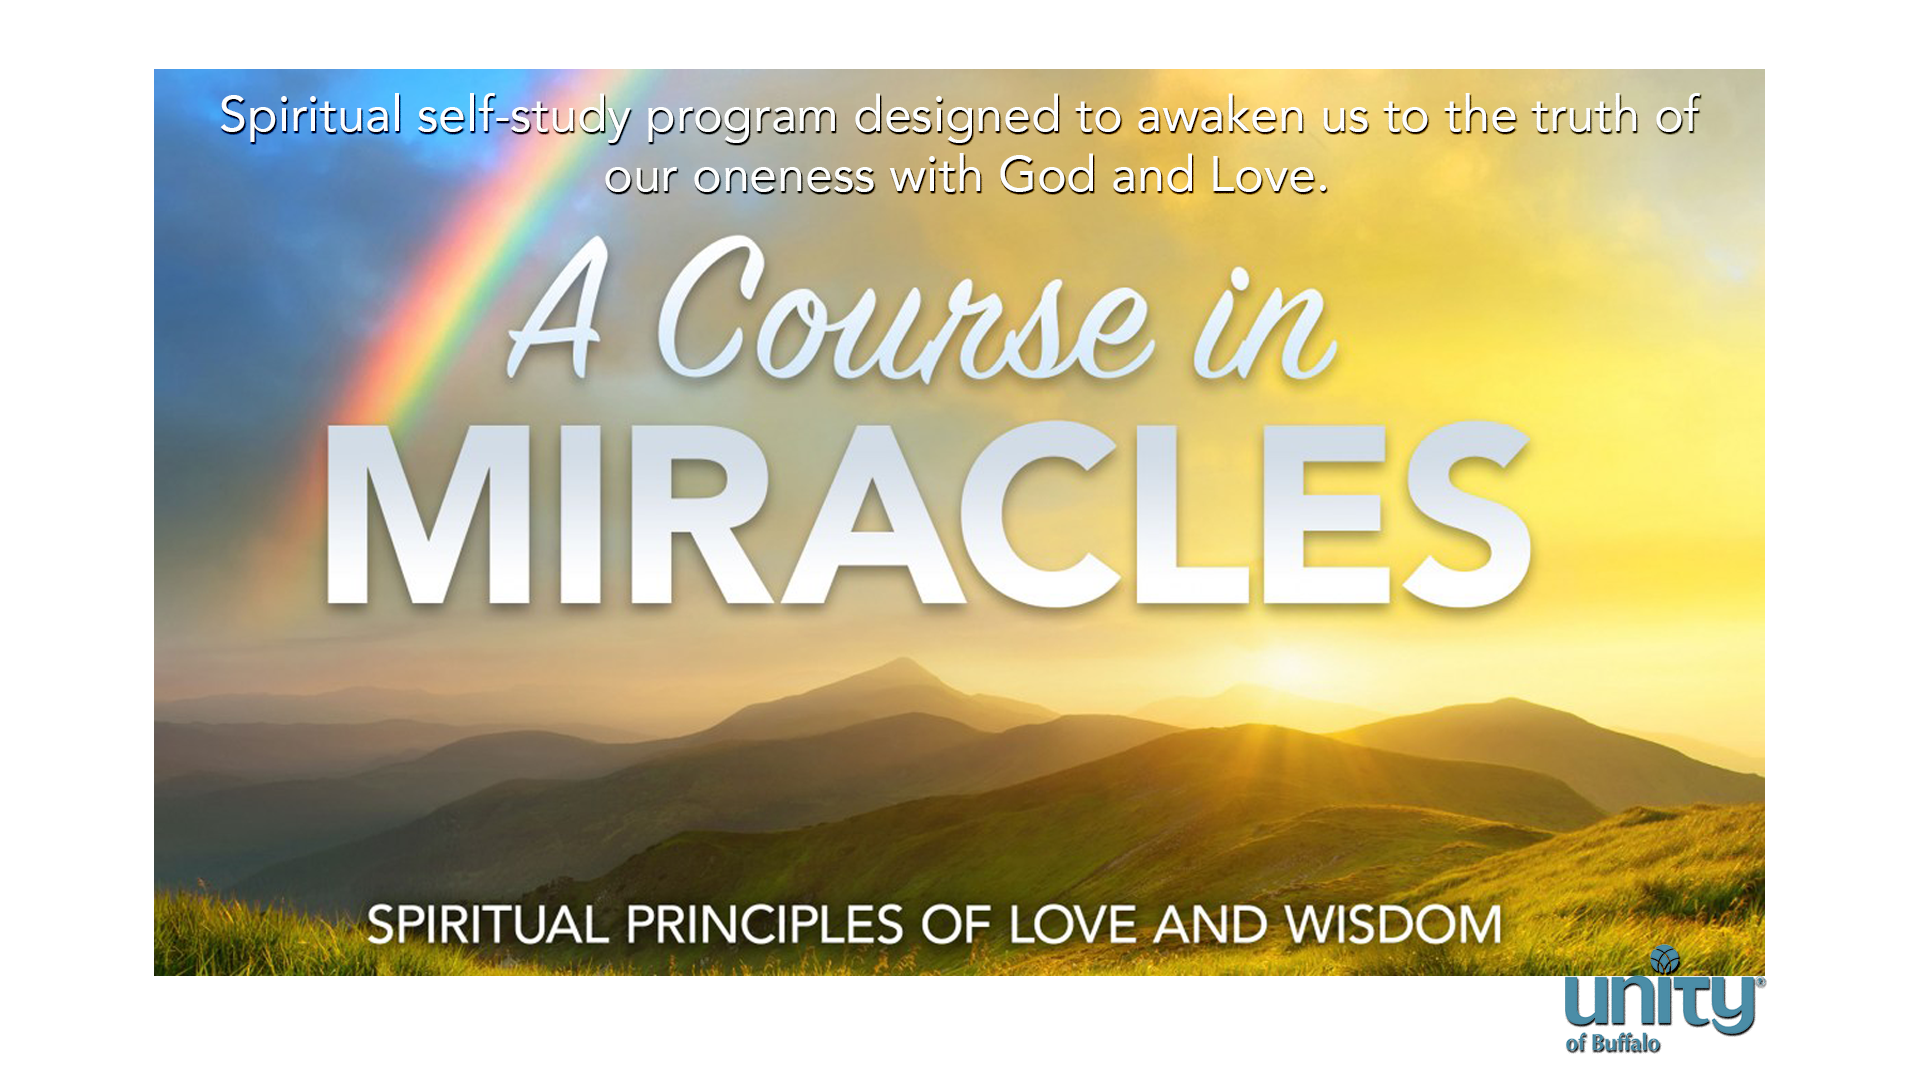 A Course in Miracles at Unity of Buffalo